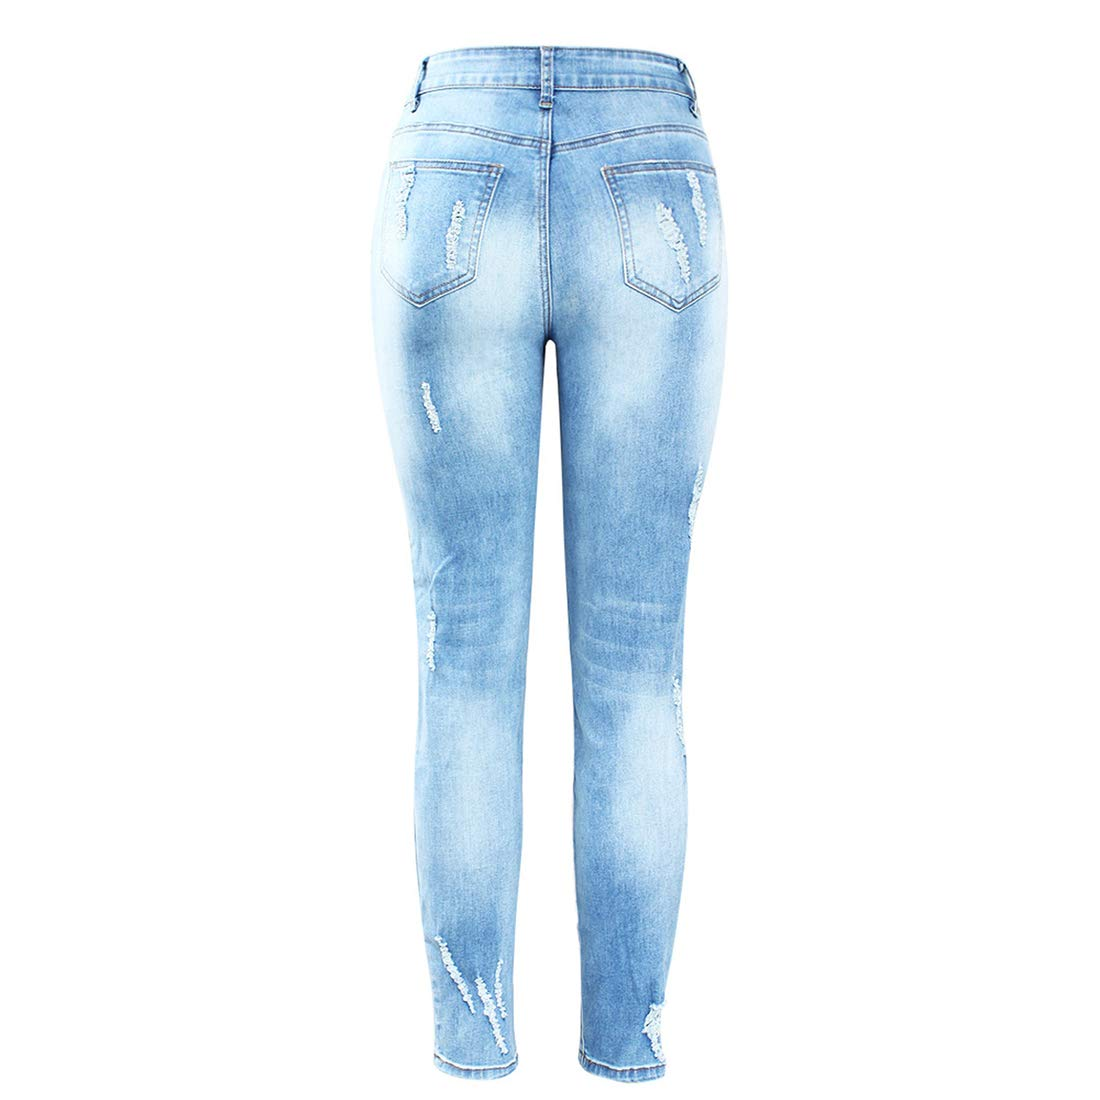 390c26dc29e8e jencla Plus Size Stretchy Scuffs 3D Embroidery Flowers Woman Denim Pants  Trousers for Women Jeans at Amazon Women s Jeans store